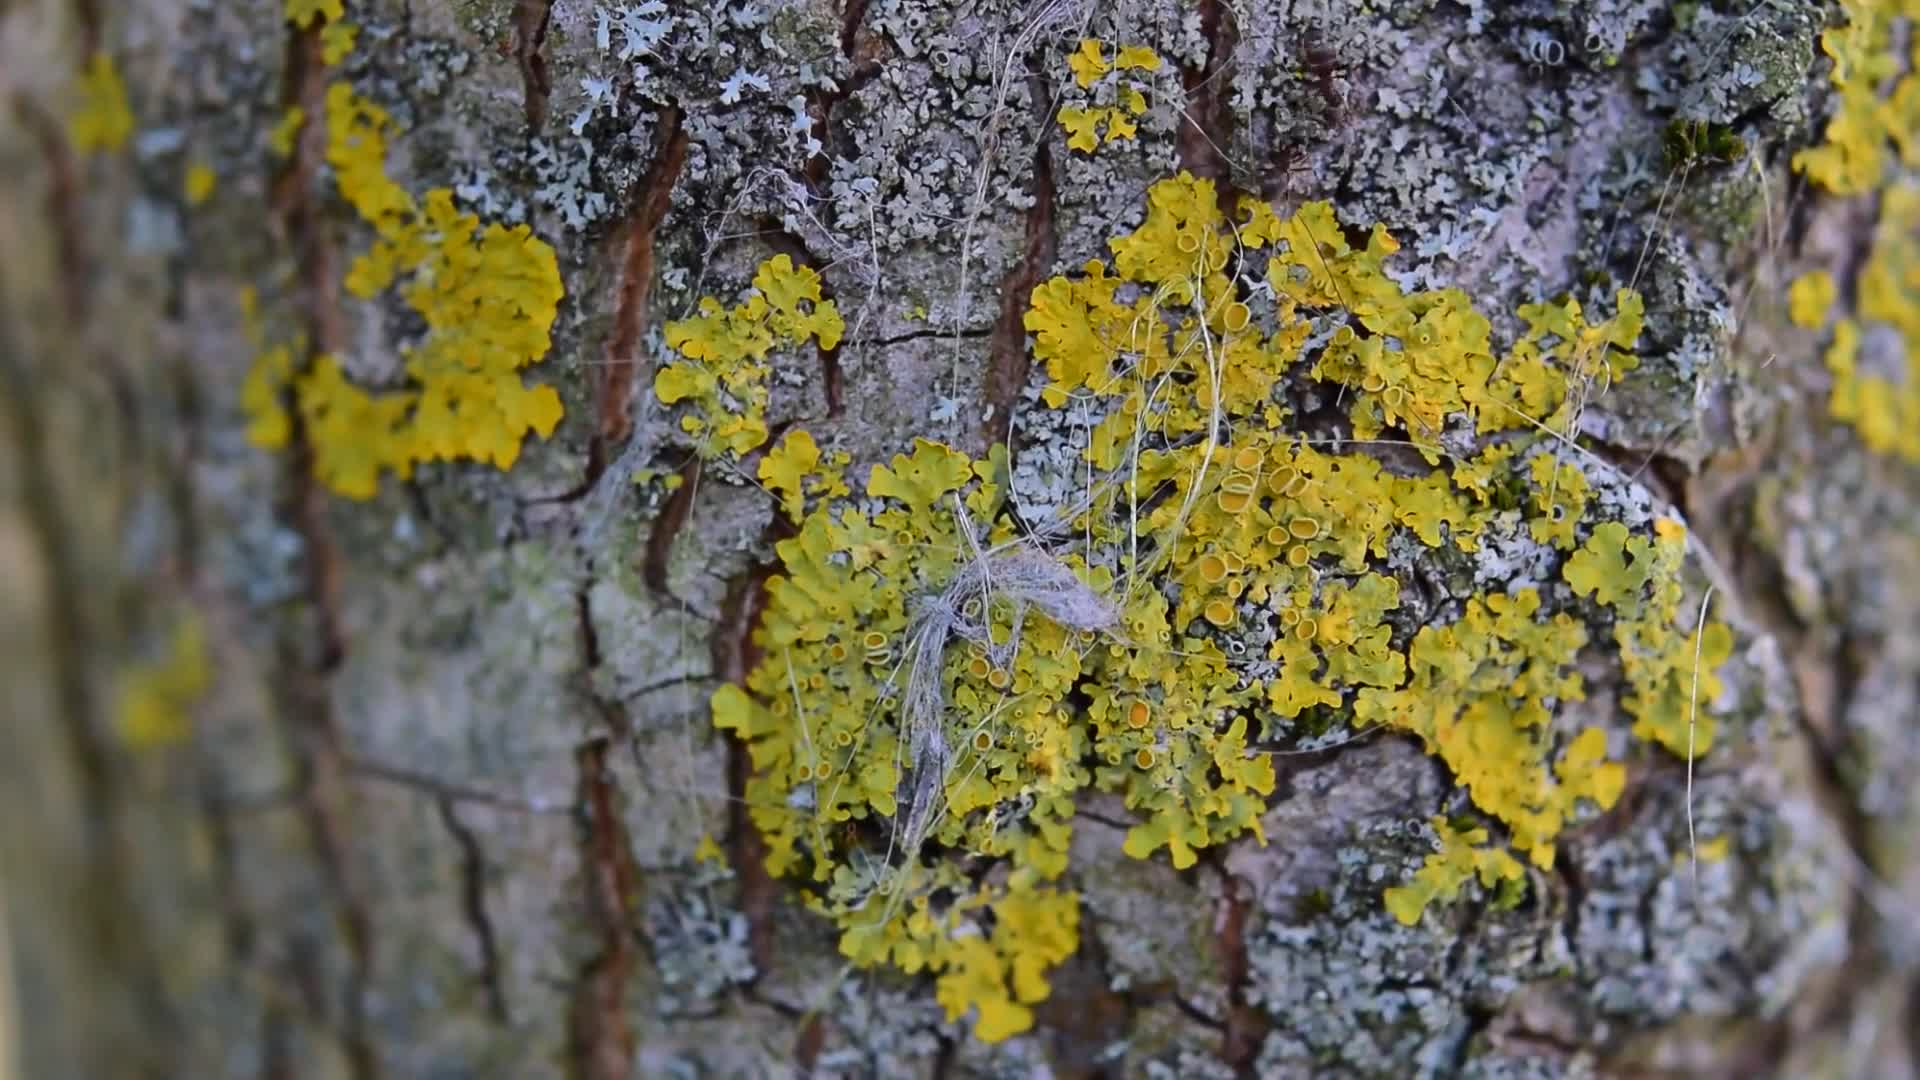 Ants tree bark nature insect